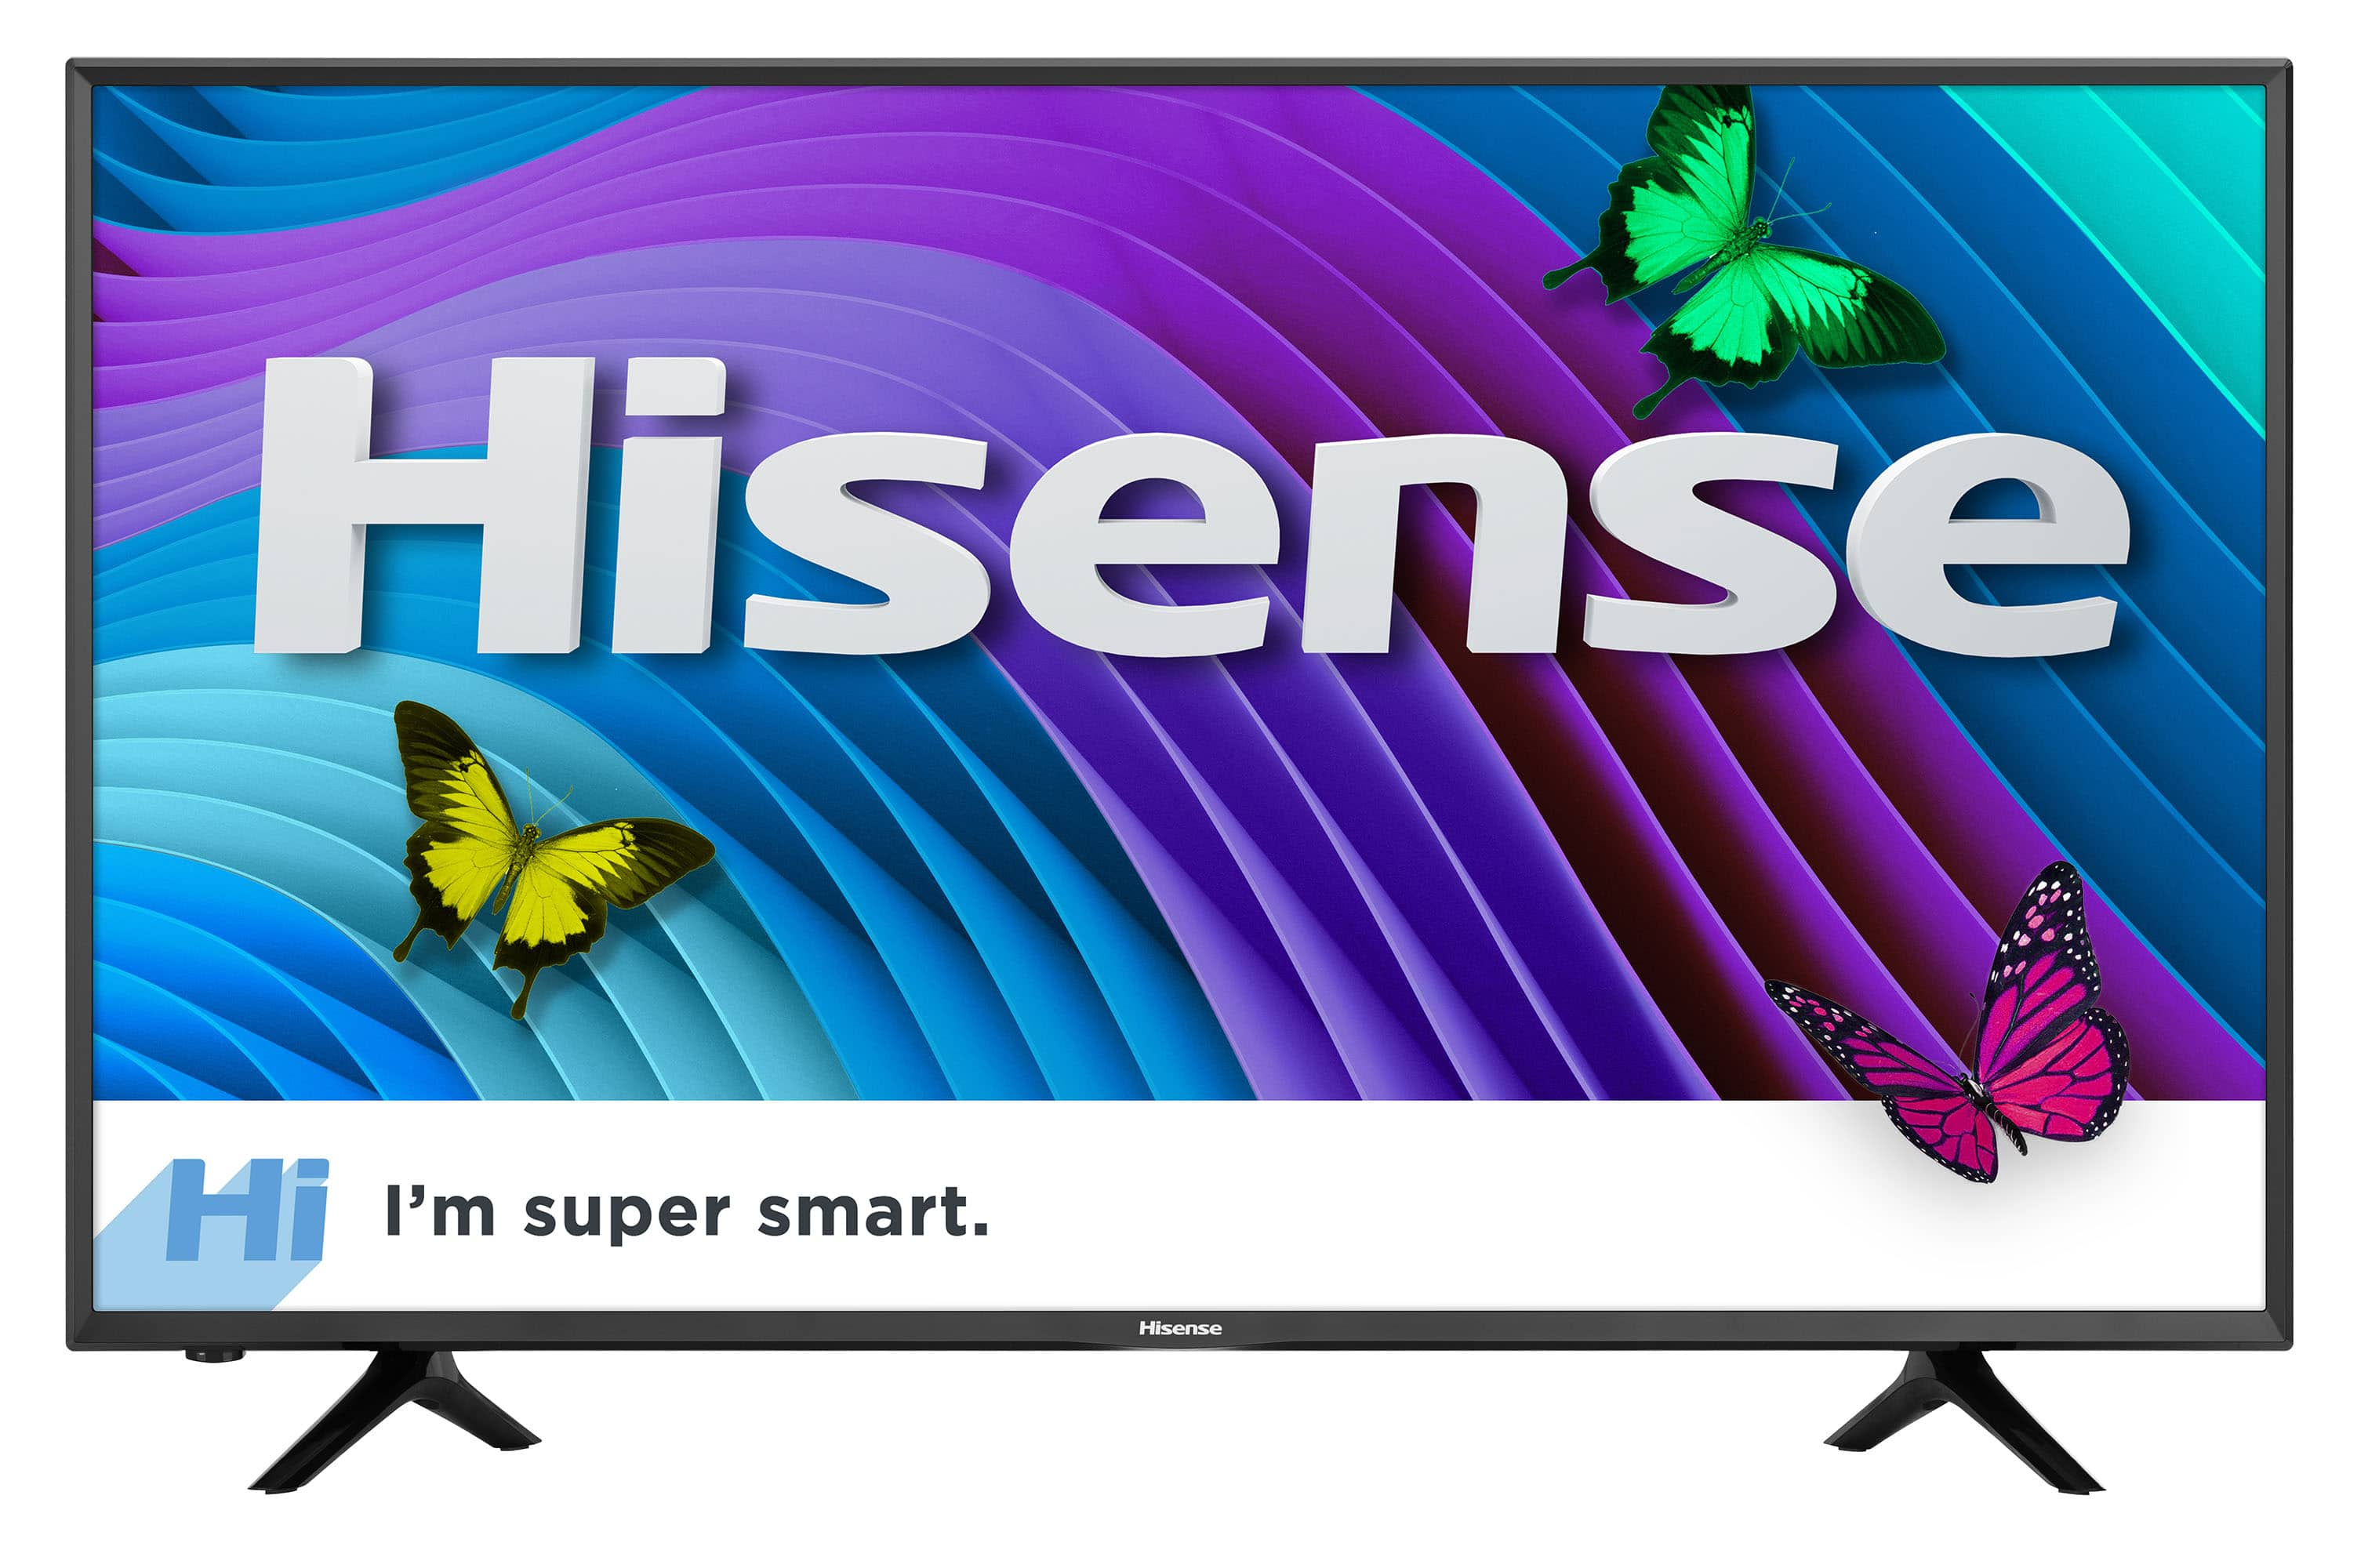 HISENSE 55H6D 55 INCH 2160P 4K SMART TV for $398 Free Store Pickup